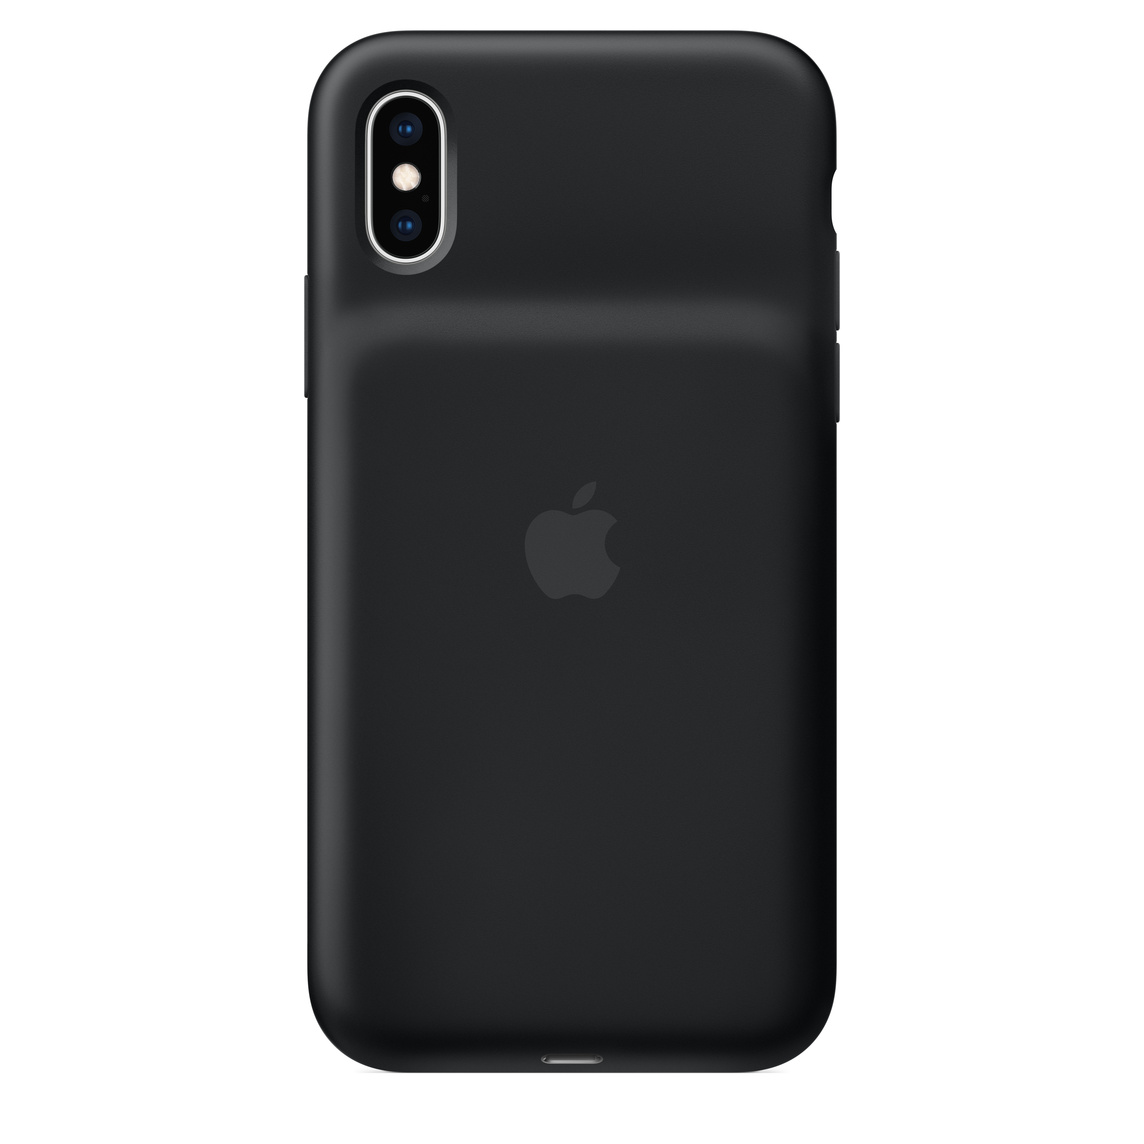 pretty nice f6133 901c6 iPhone XS Smart Battery Case - Black